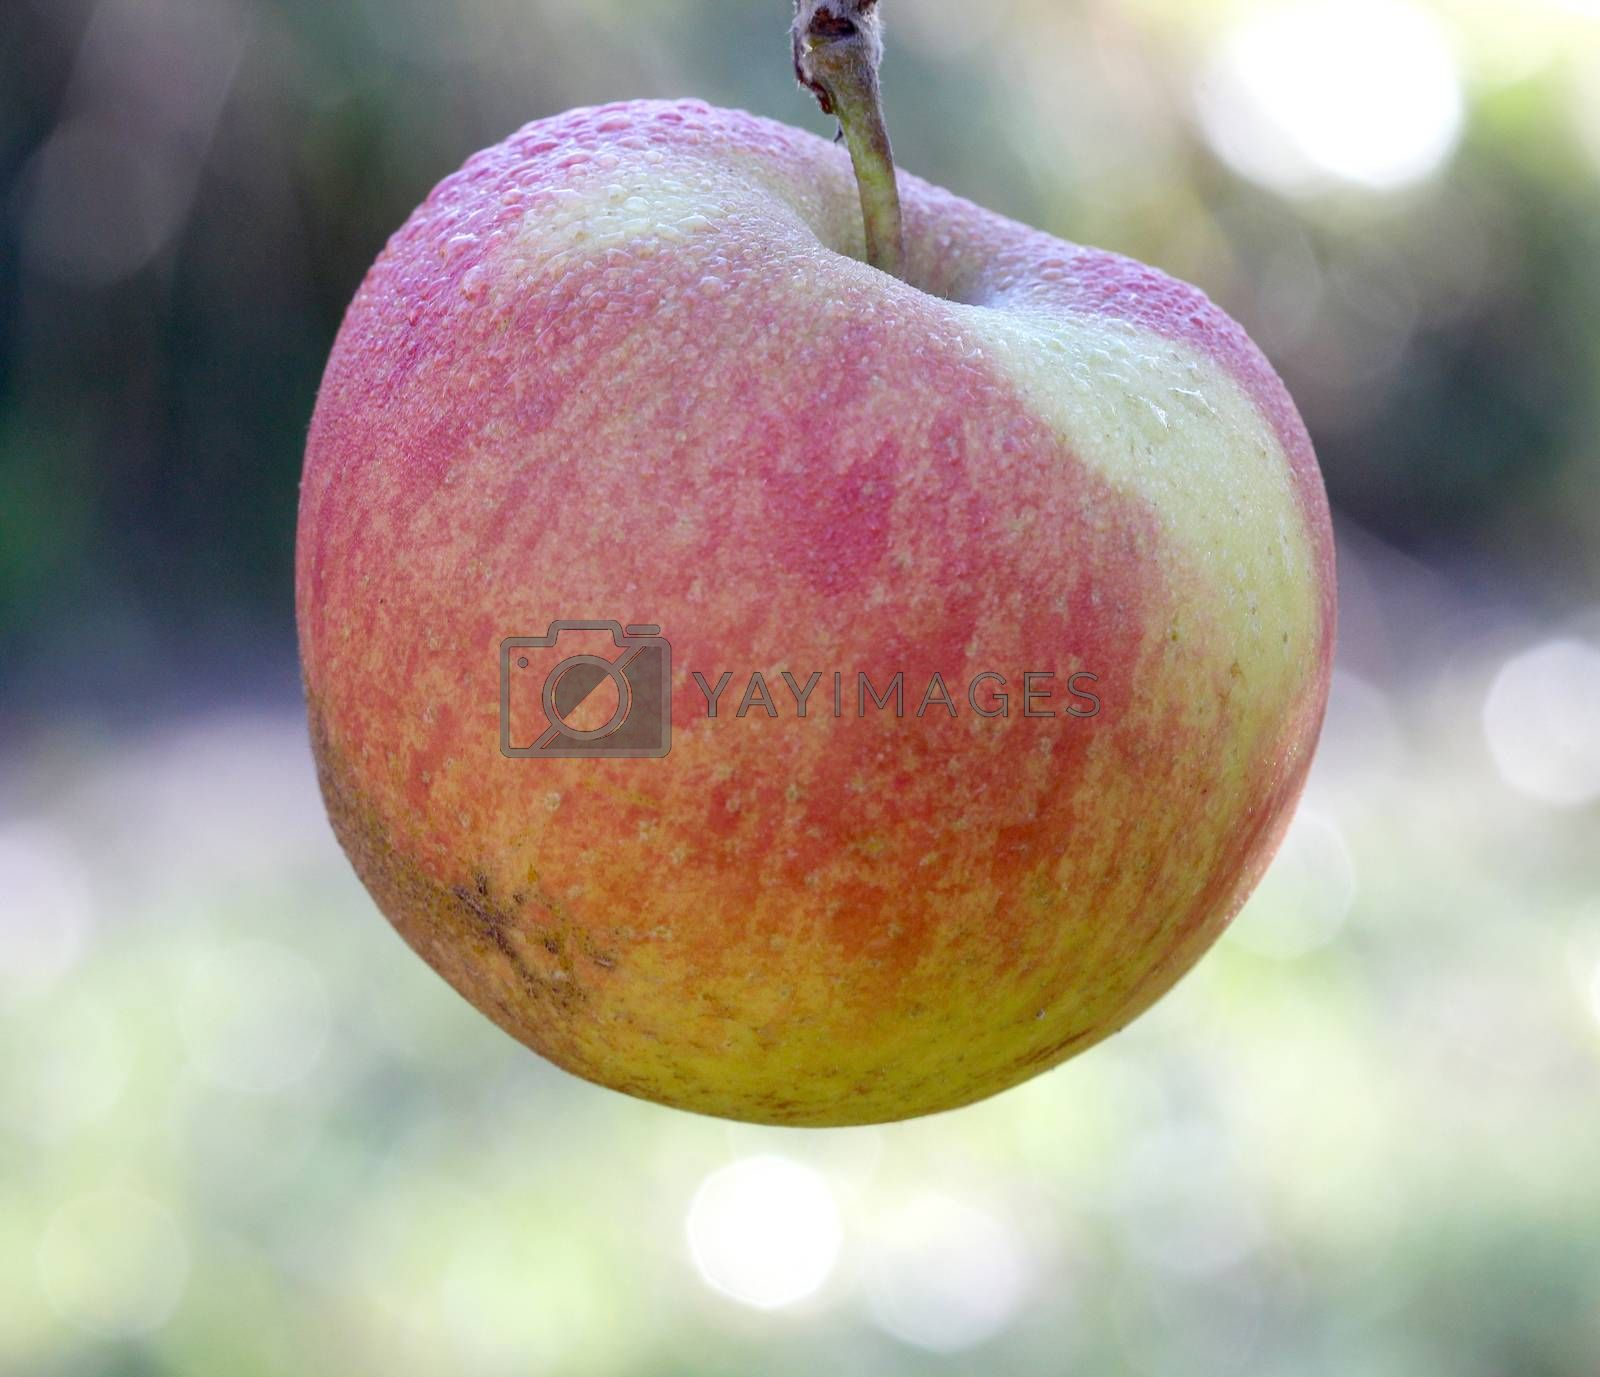 Royalty free image of Apples on tree on november morning by nehru